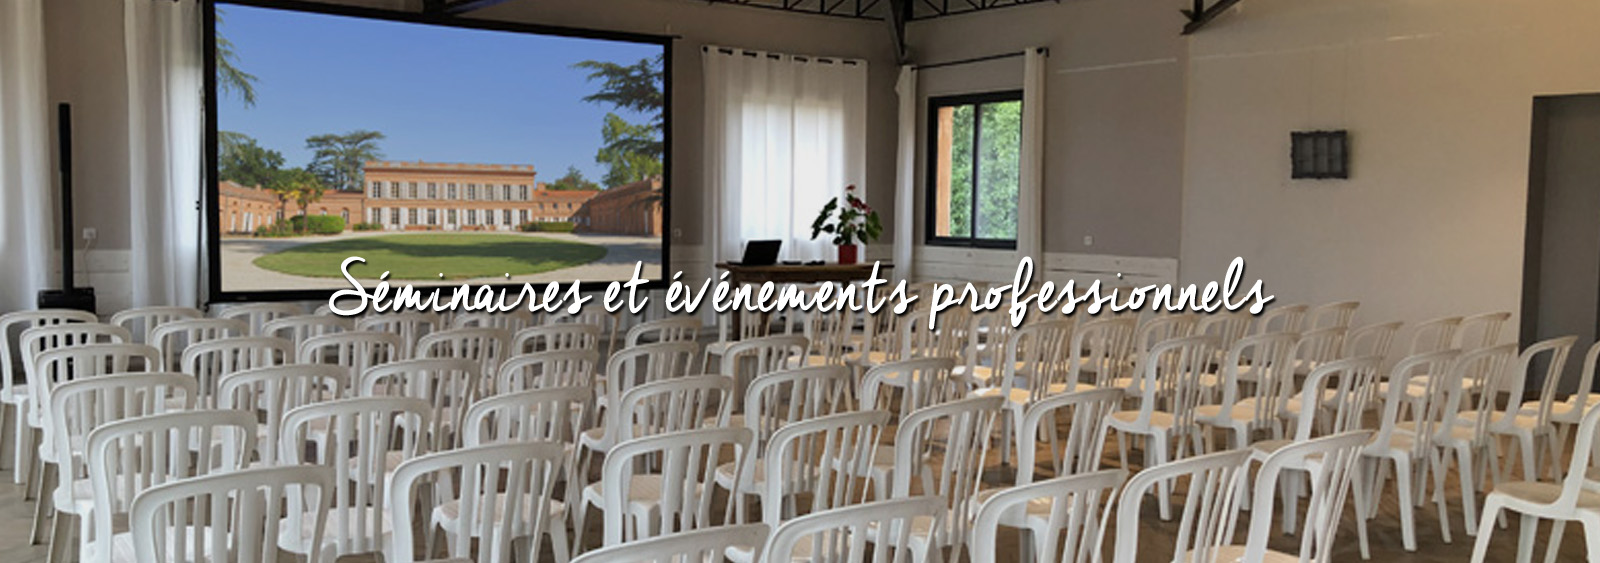 Chateau-lavalade-evenements-professionnels-seminaires-slider